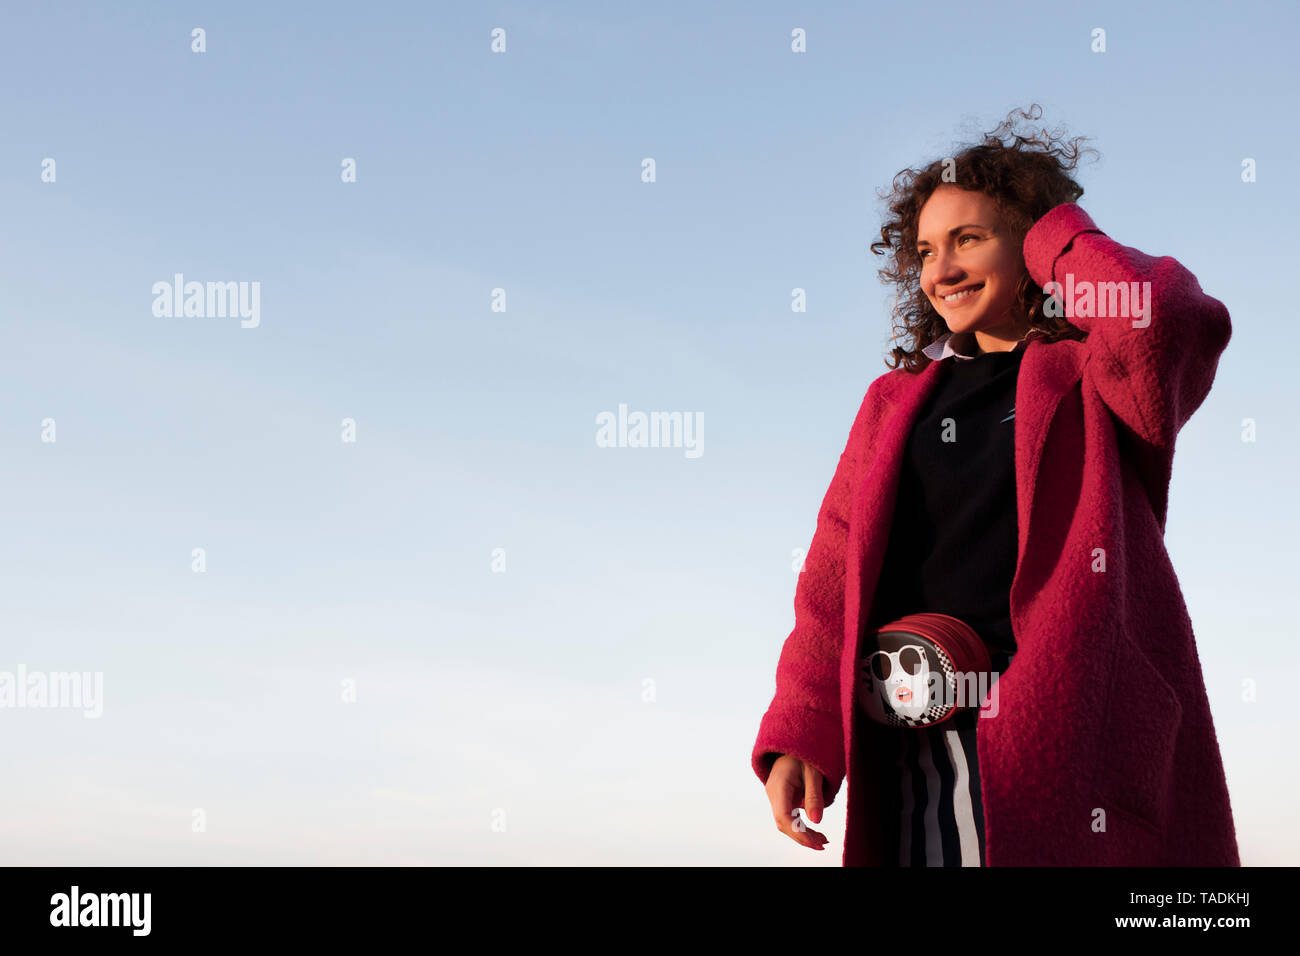 Portrait of smiling woman with curly hair - Stock Image